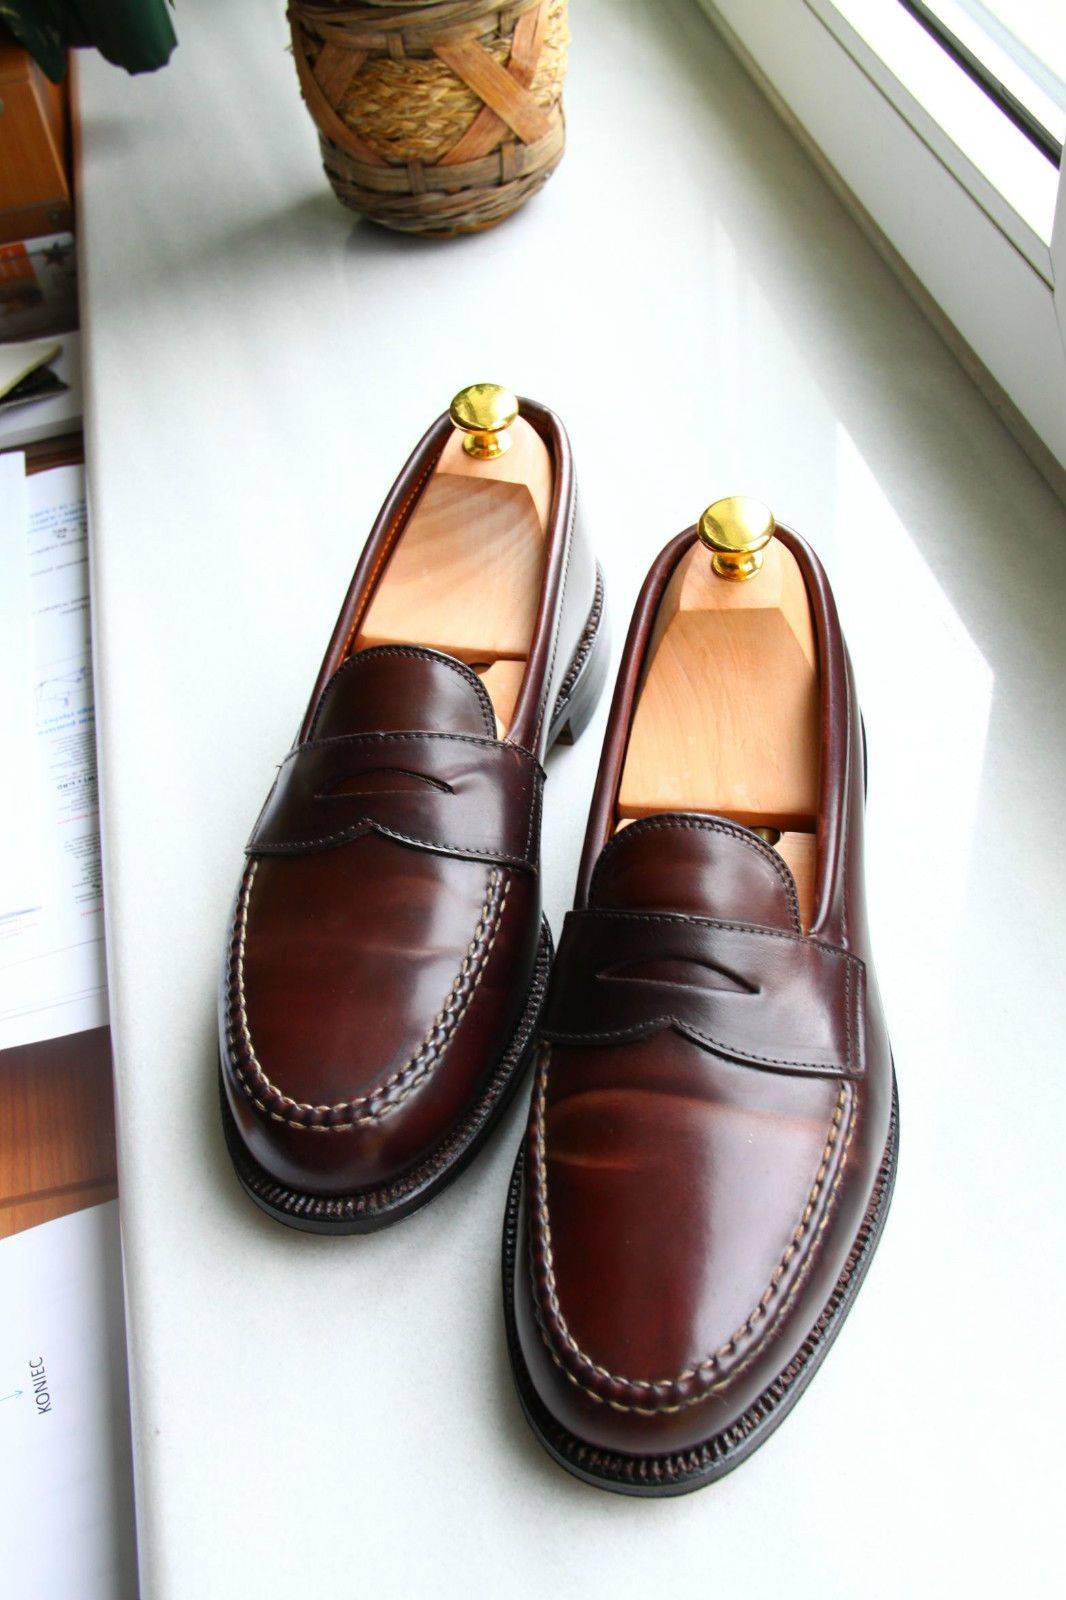 e736cd364 Alden penny loafers | Men's Loafers | Brown dress shoes, Shoes ...